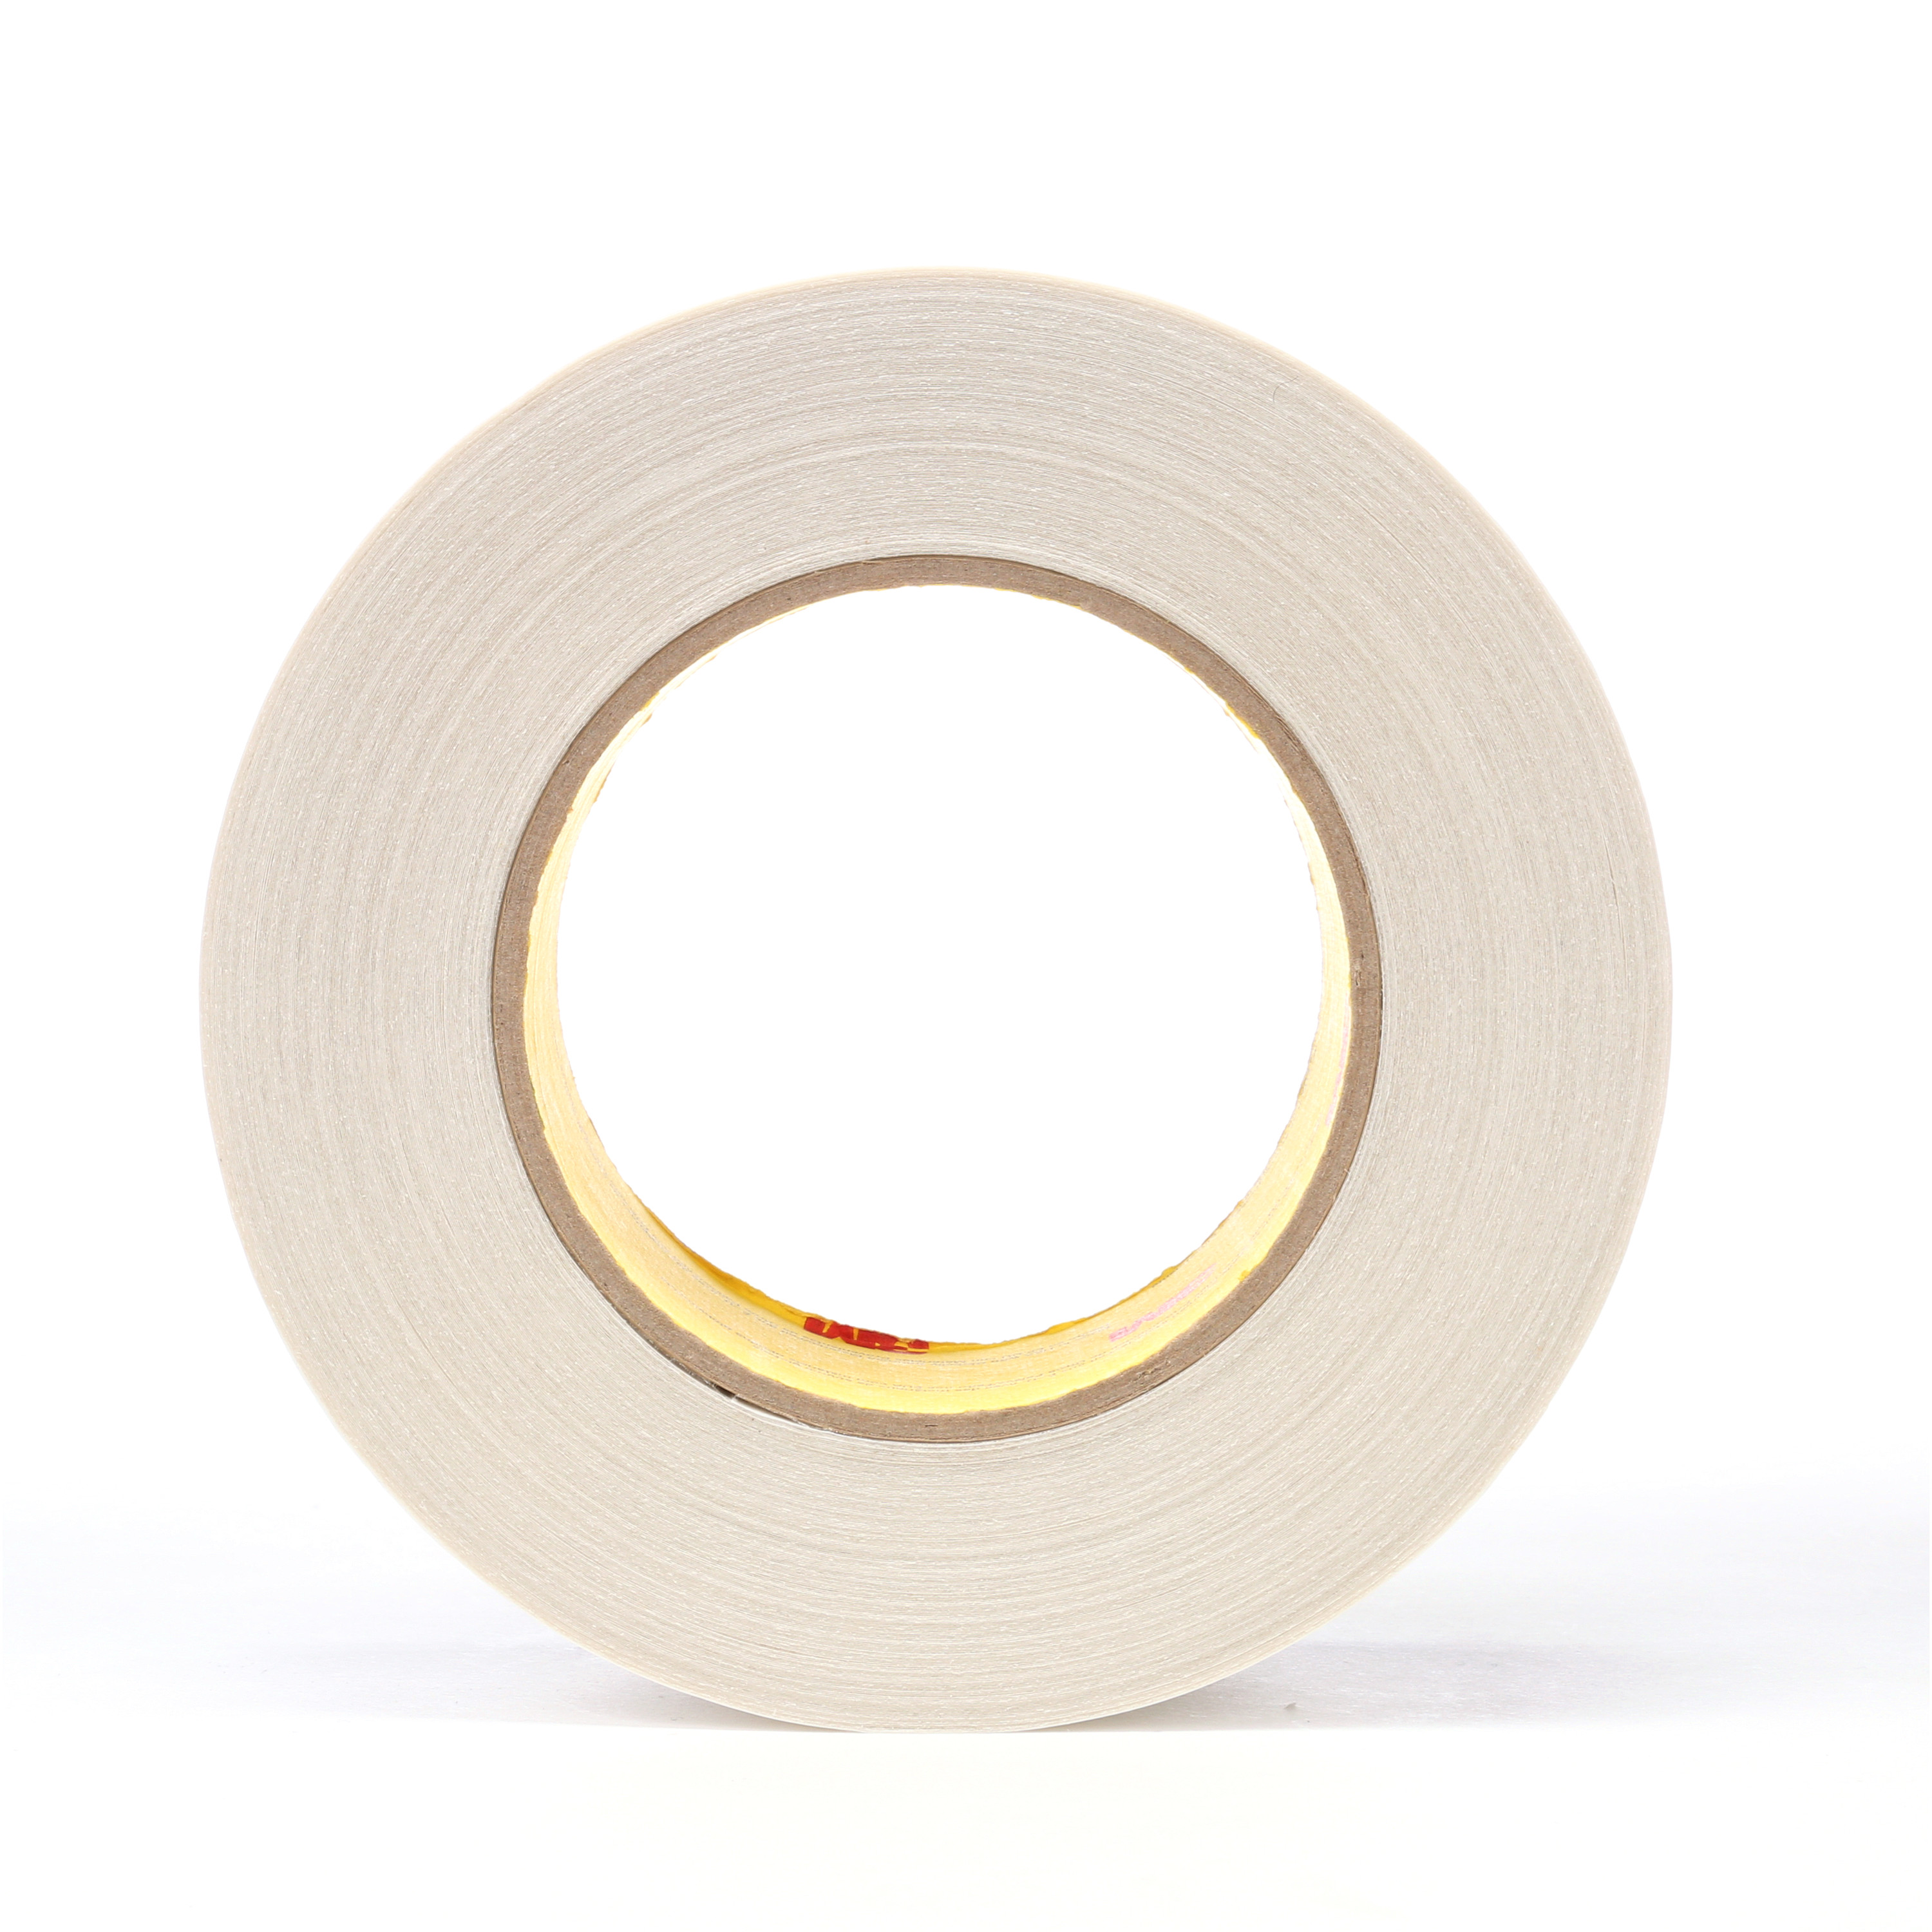 3M™ Double Coated Tape 9737, Clear, 60 in x 60 yd, 3.5 mil, 1 roll per case, Plastic Core